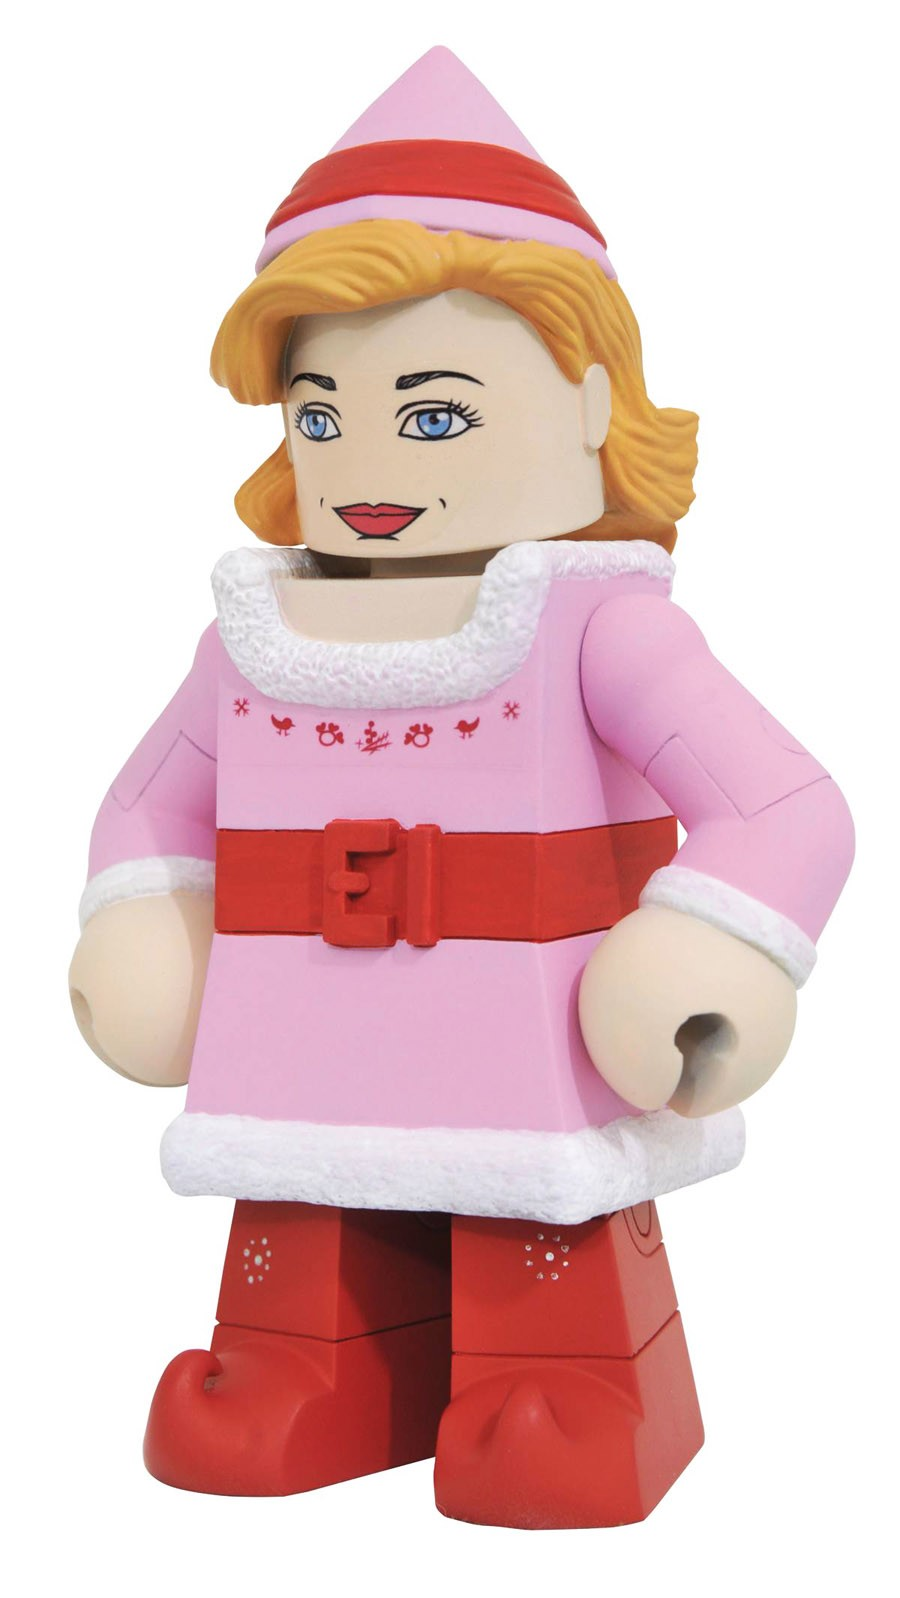 Jovie from Elf Vinimate Vinyl Figure